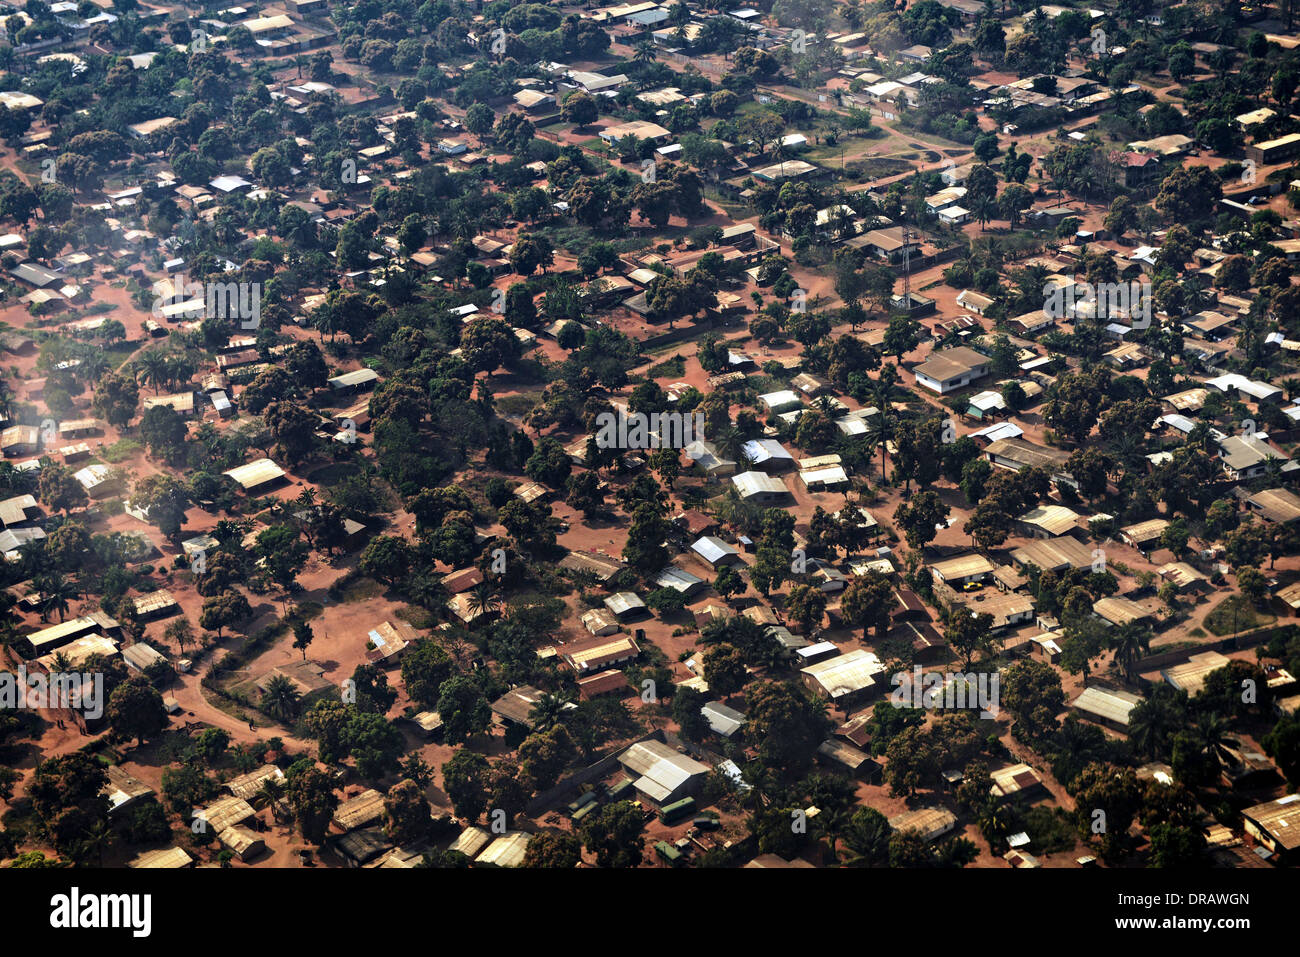 Aerial view of homes in the capital Bangui January 19, 2014 in Central Africa Republic. - Stock Image